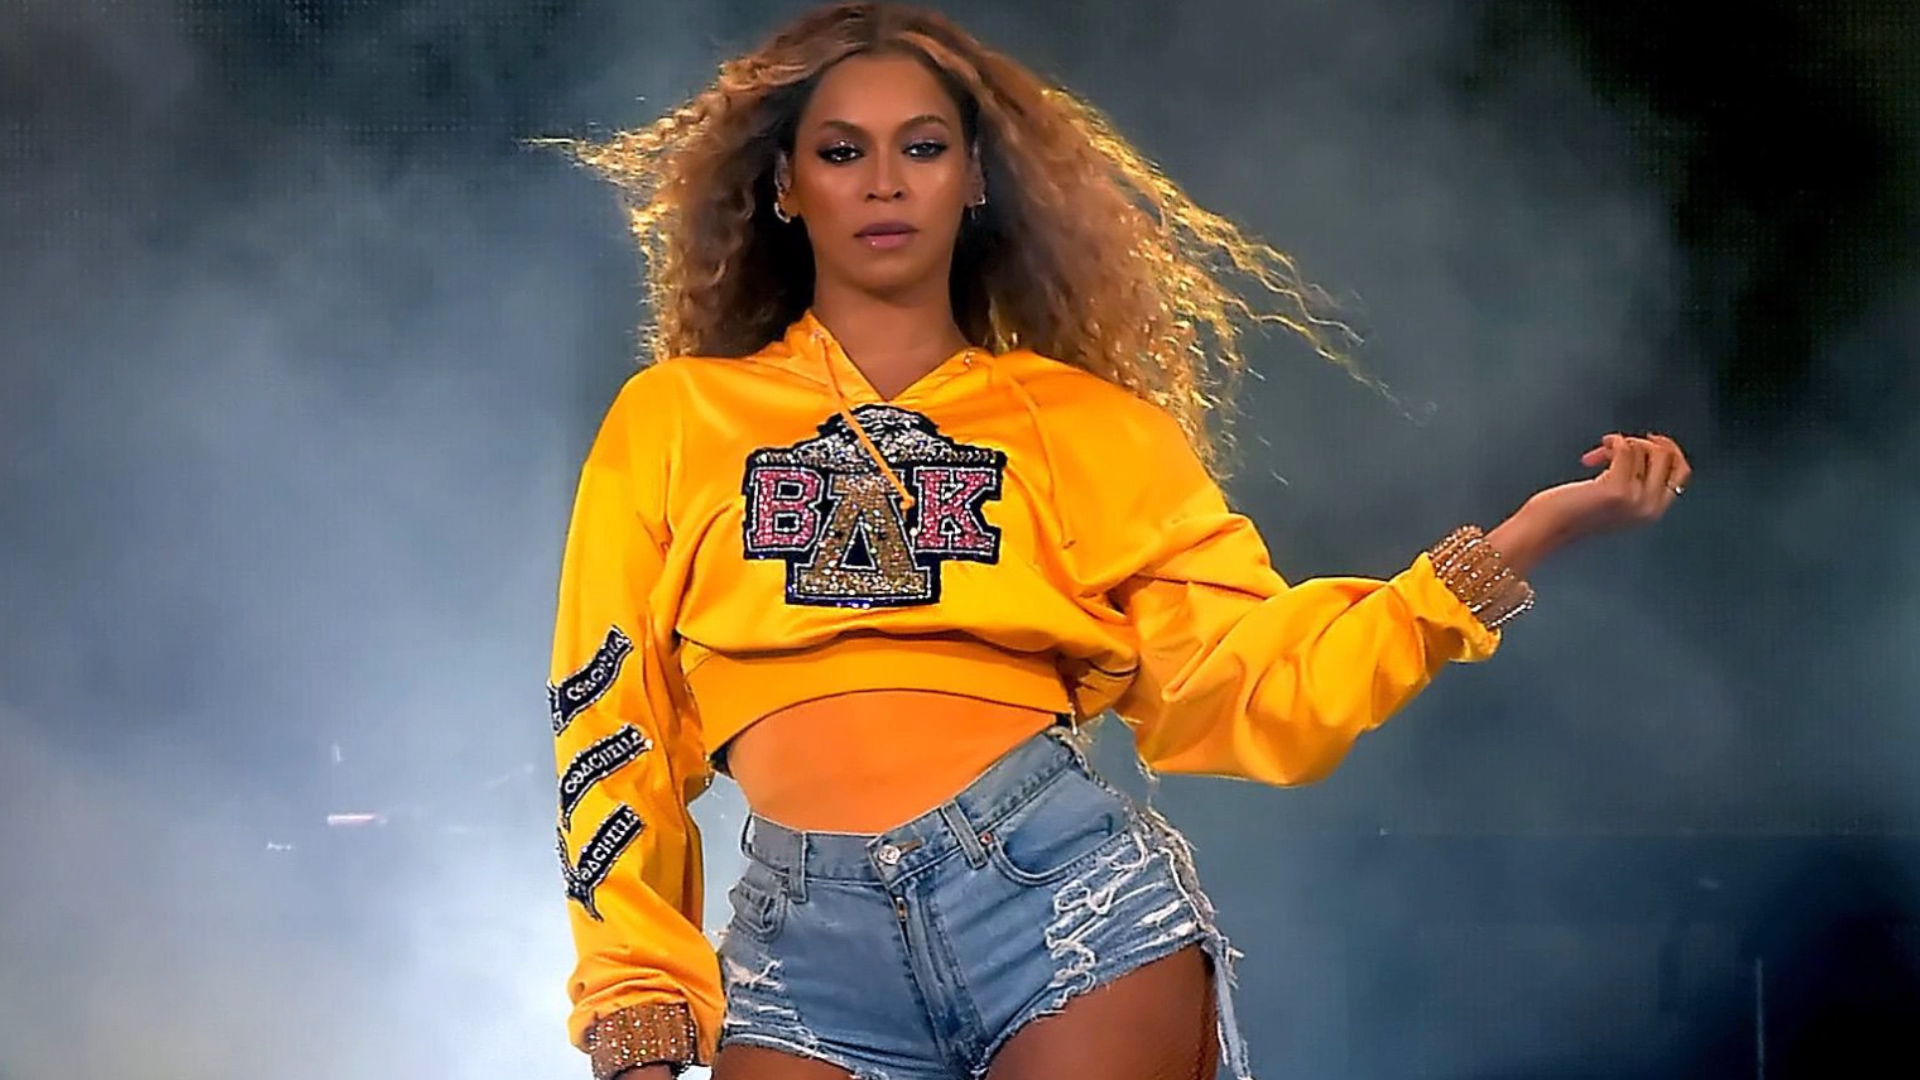 Beyoncé's 'Homecoming' Loses Emmy To 'Carpool Karaoke'